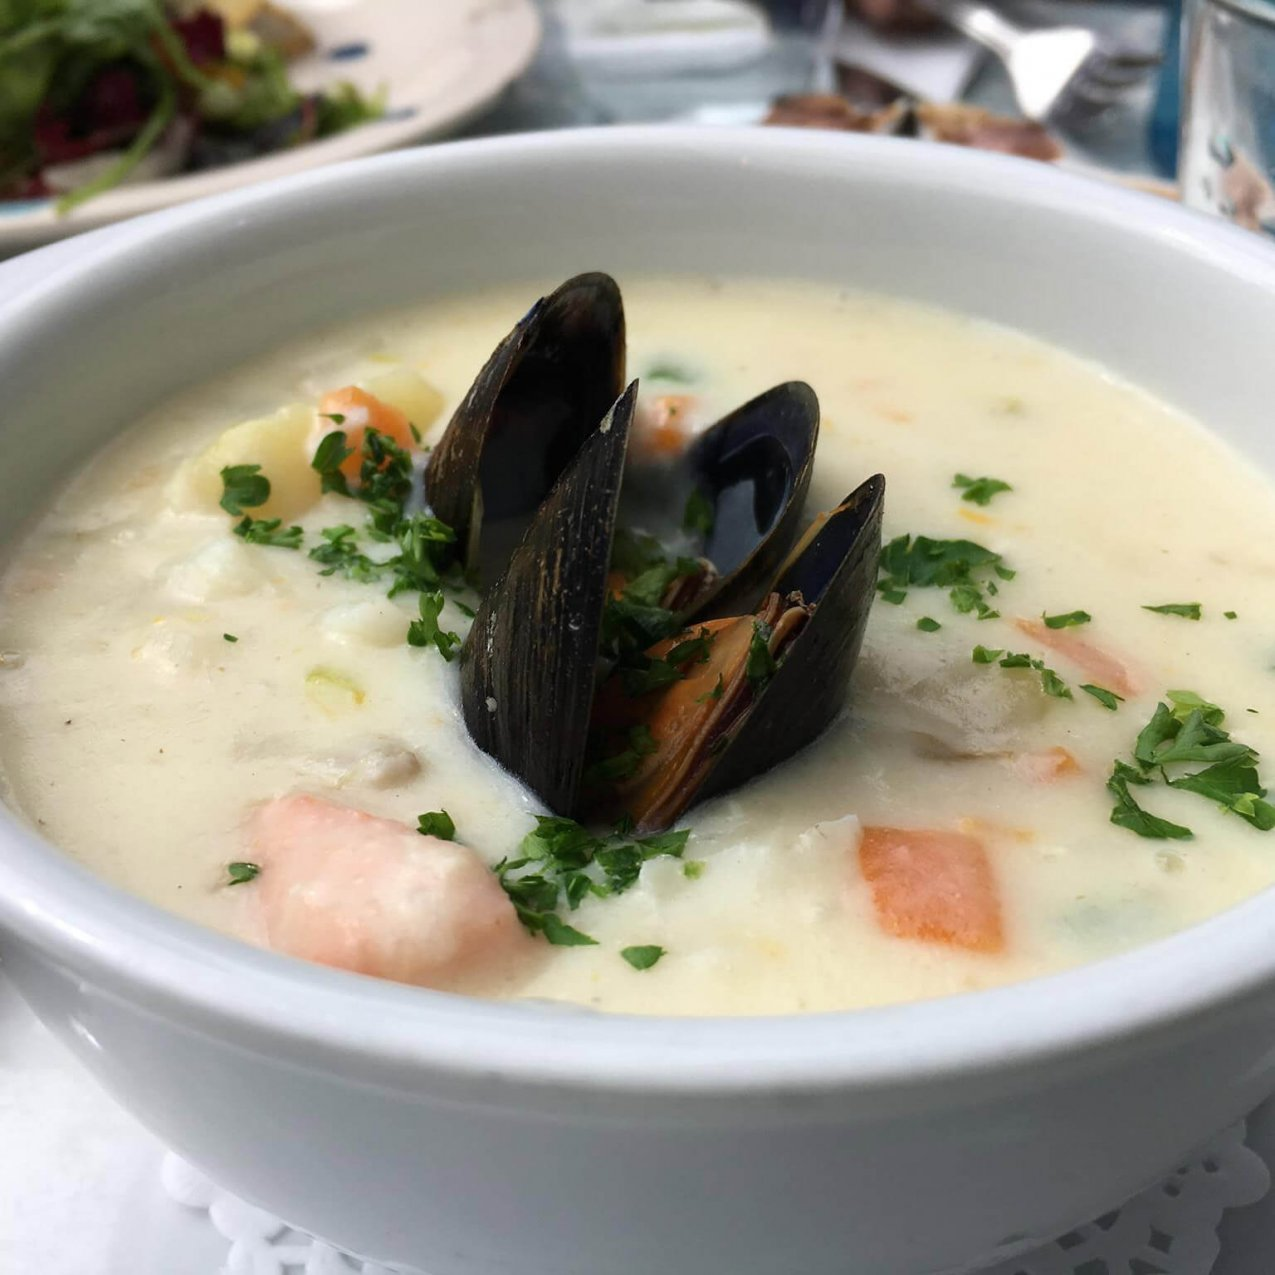 Creamy seafood chowder featuring mussels and herbs